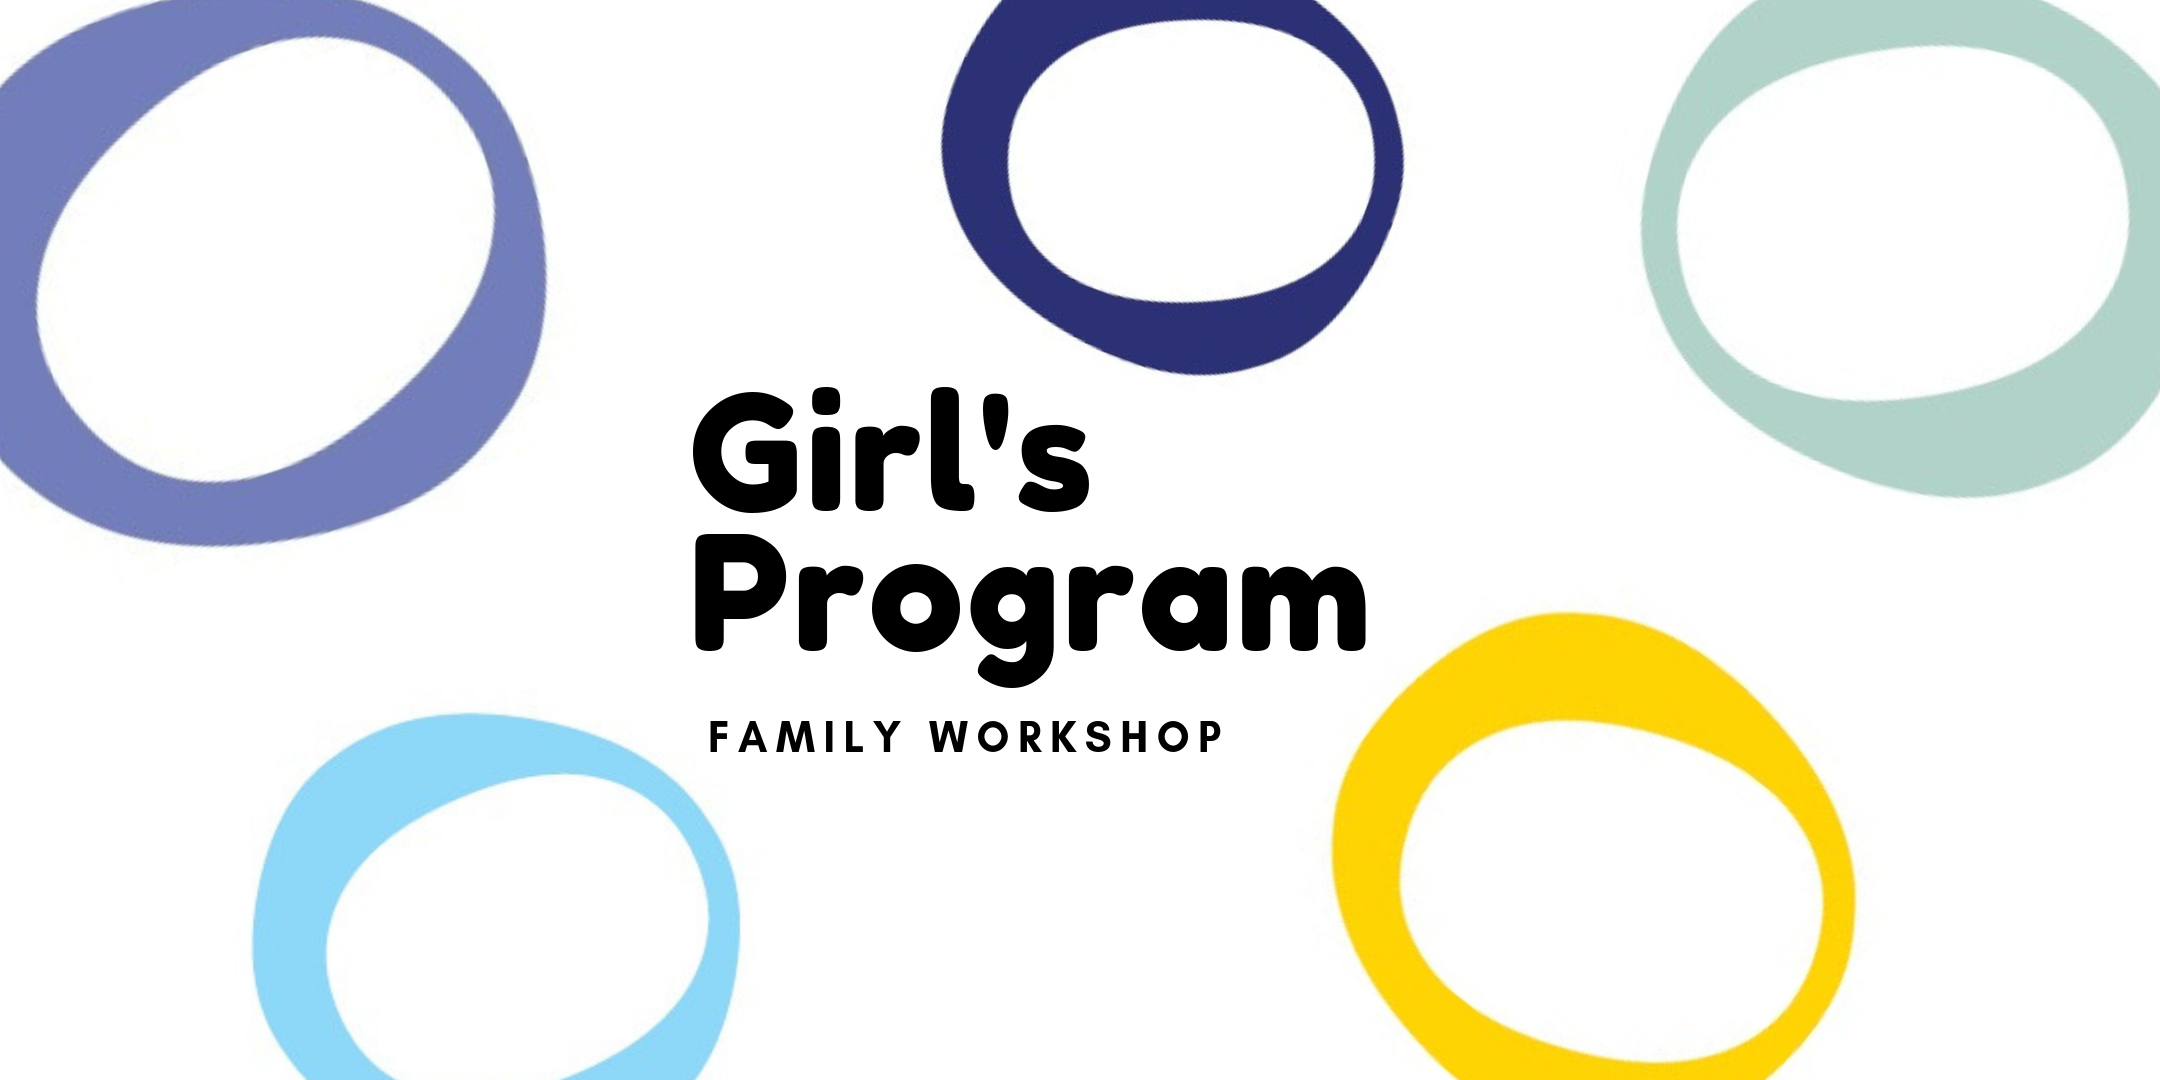 New Brighton Girl's Program: Celebration